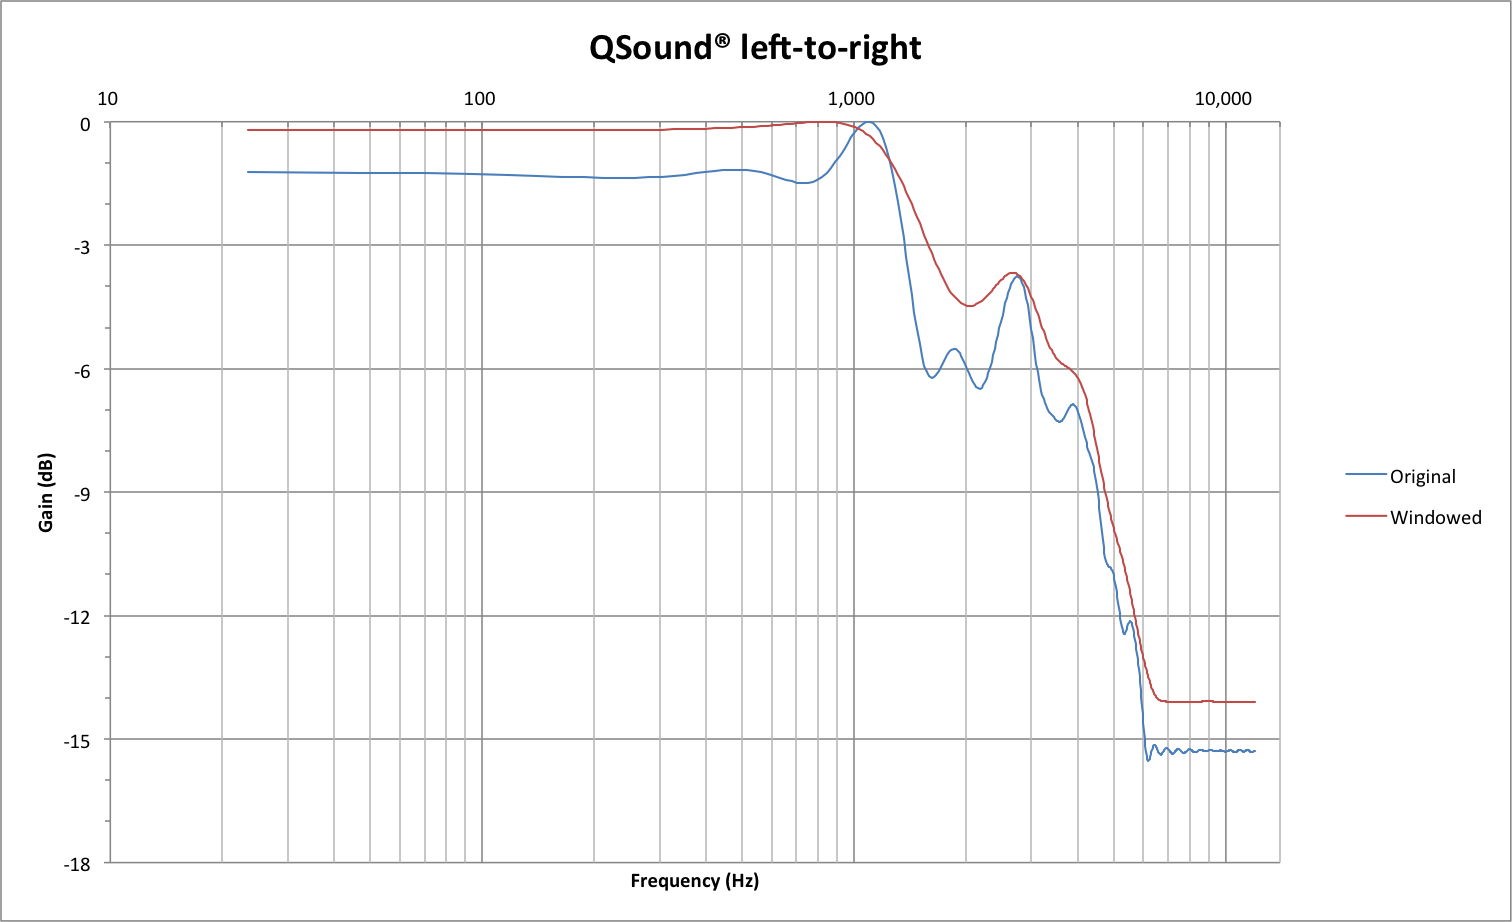 QSound left-to-right